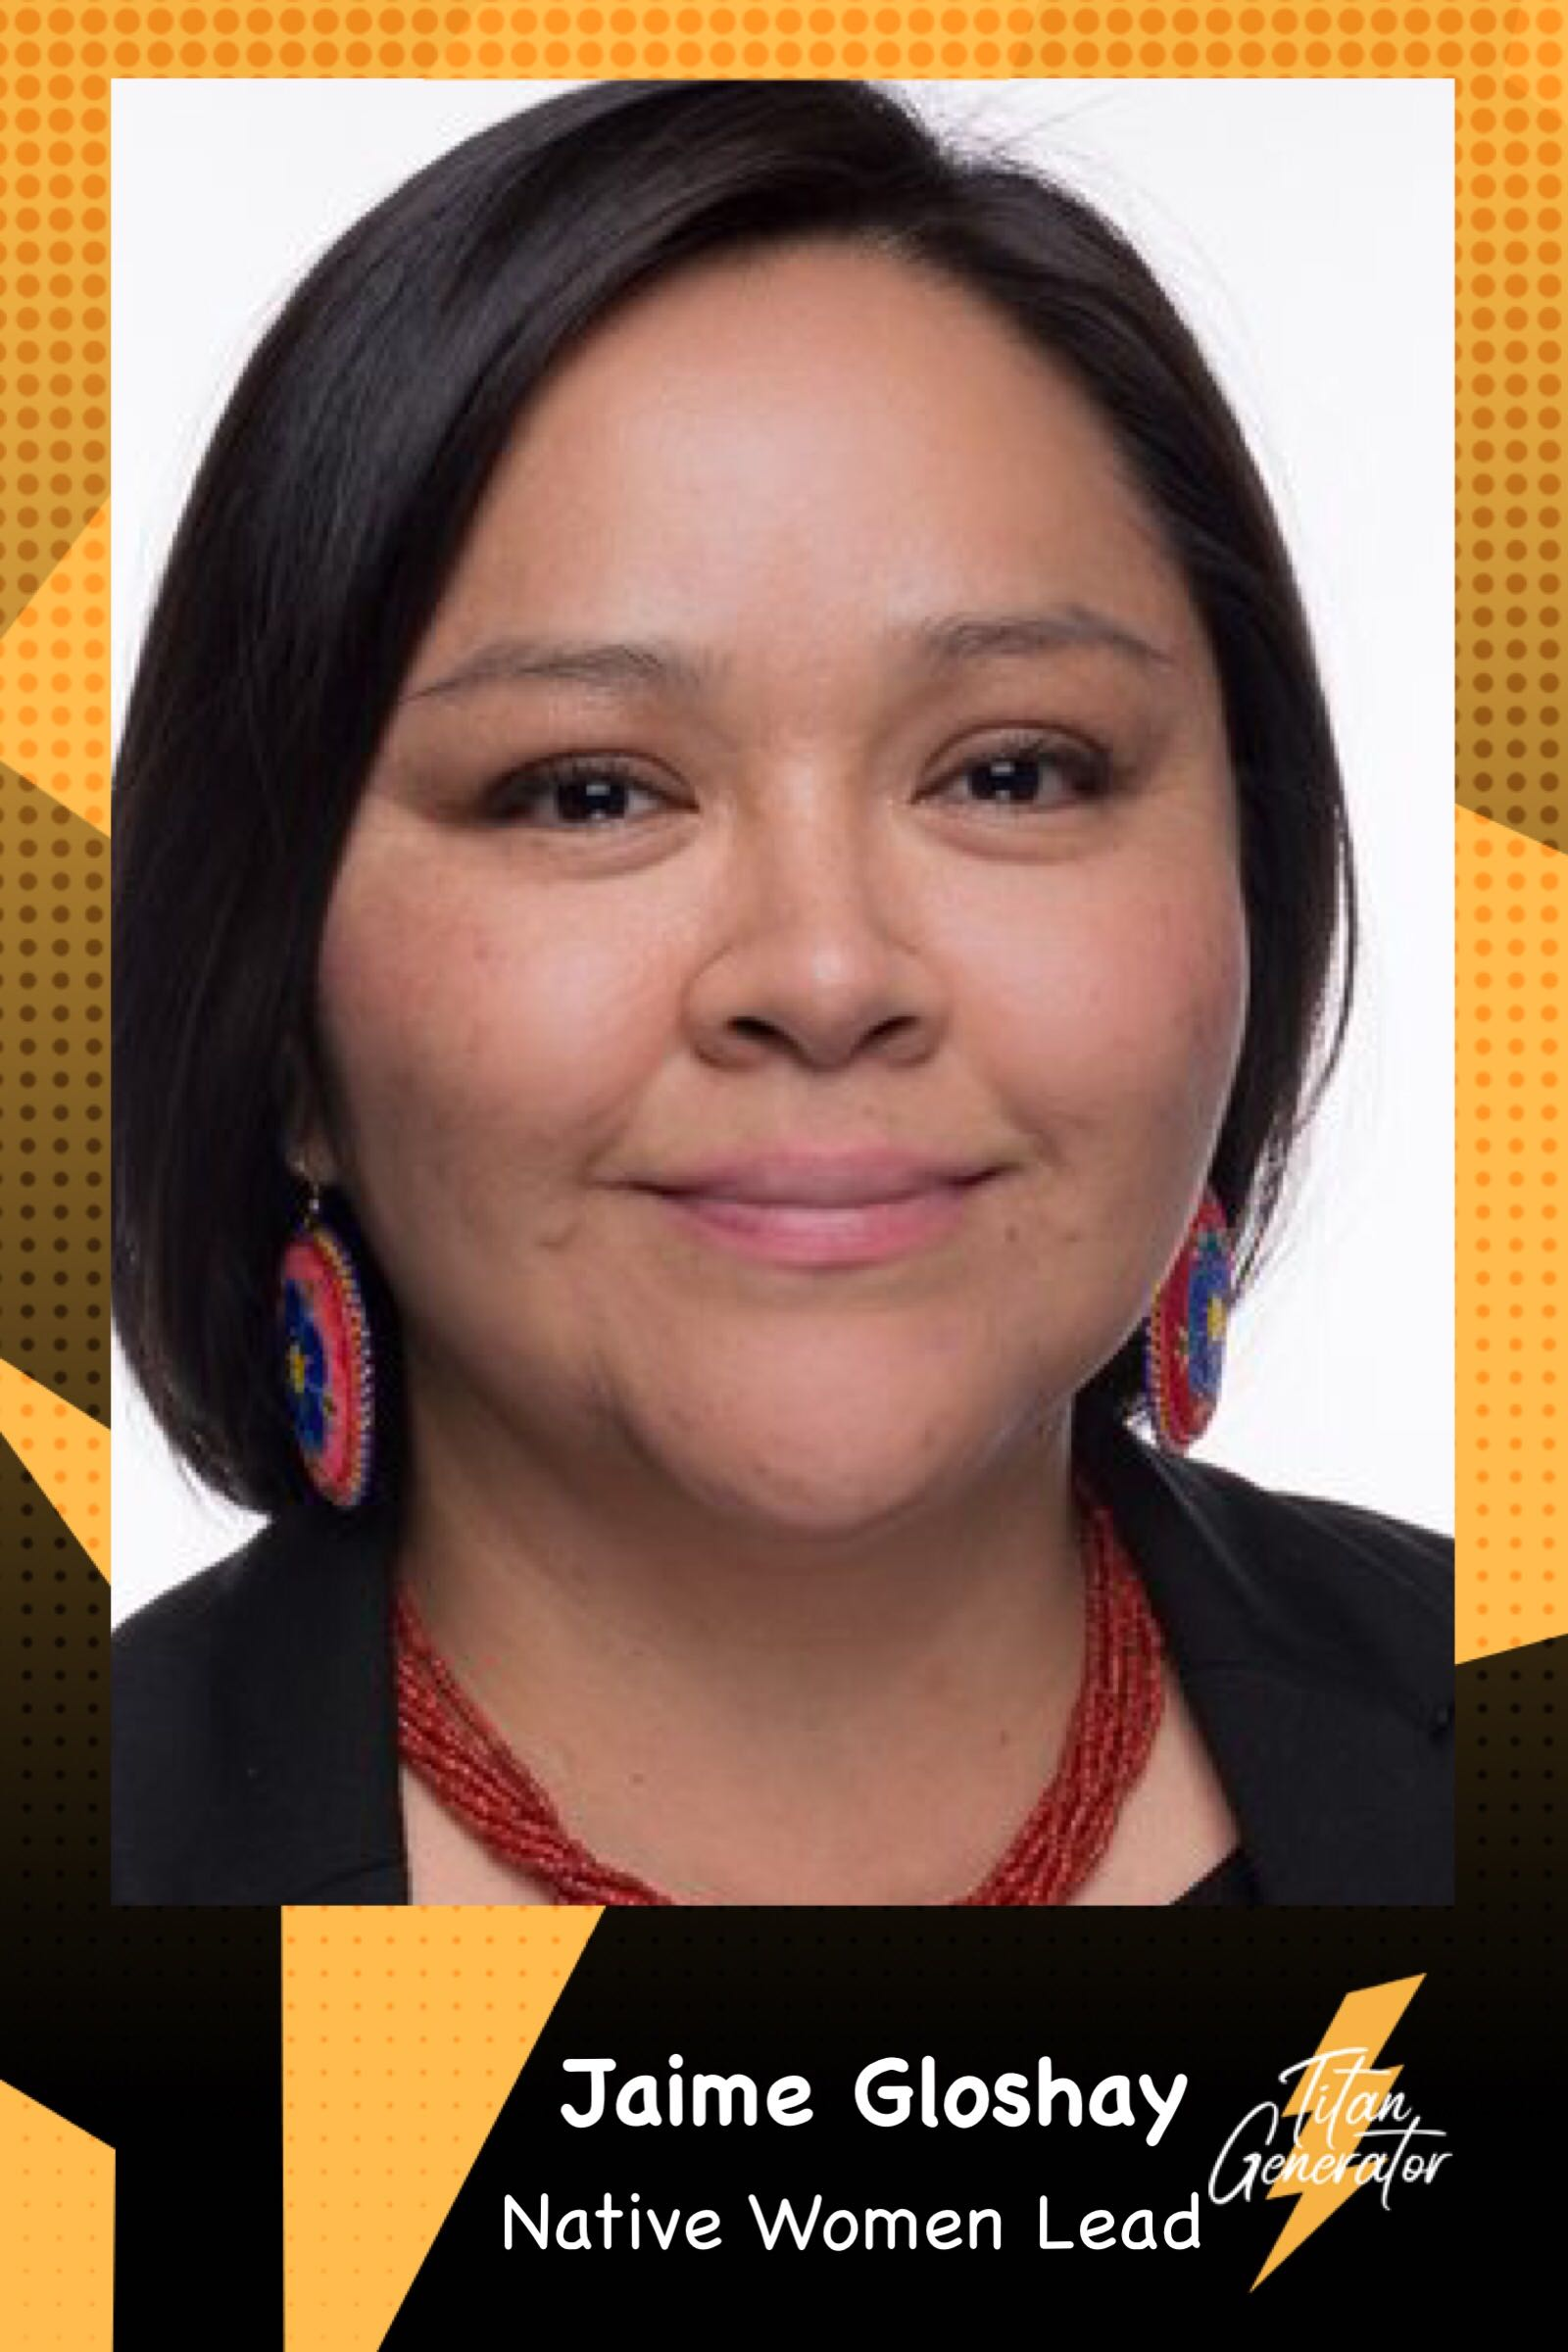 Jamie Gloshay - Native Women Lead